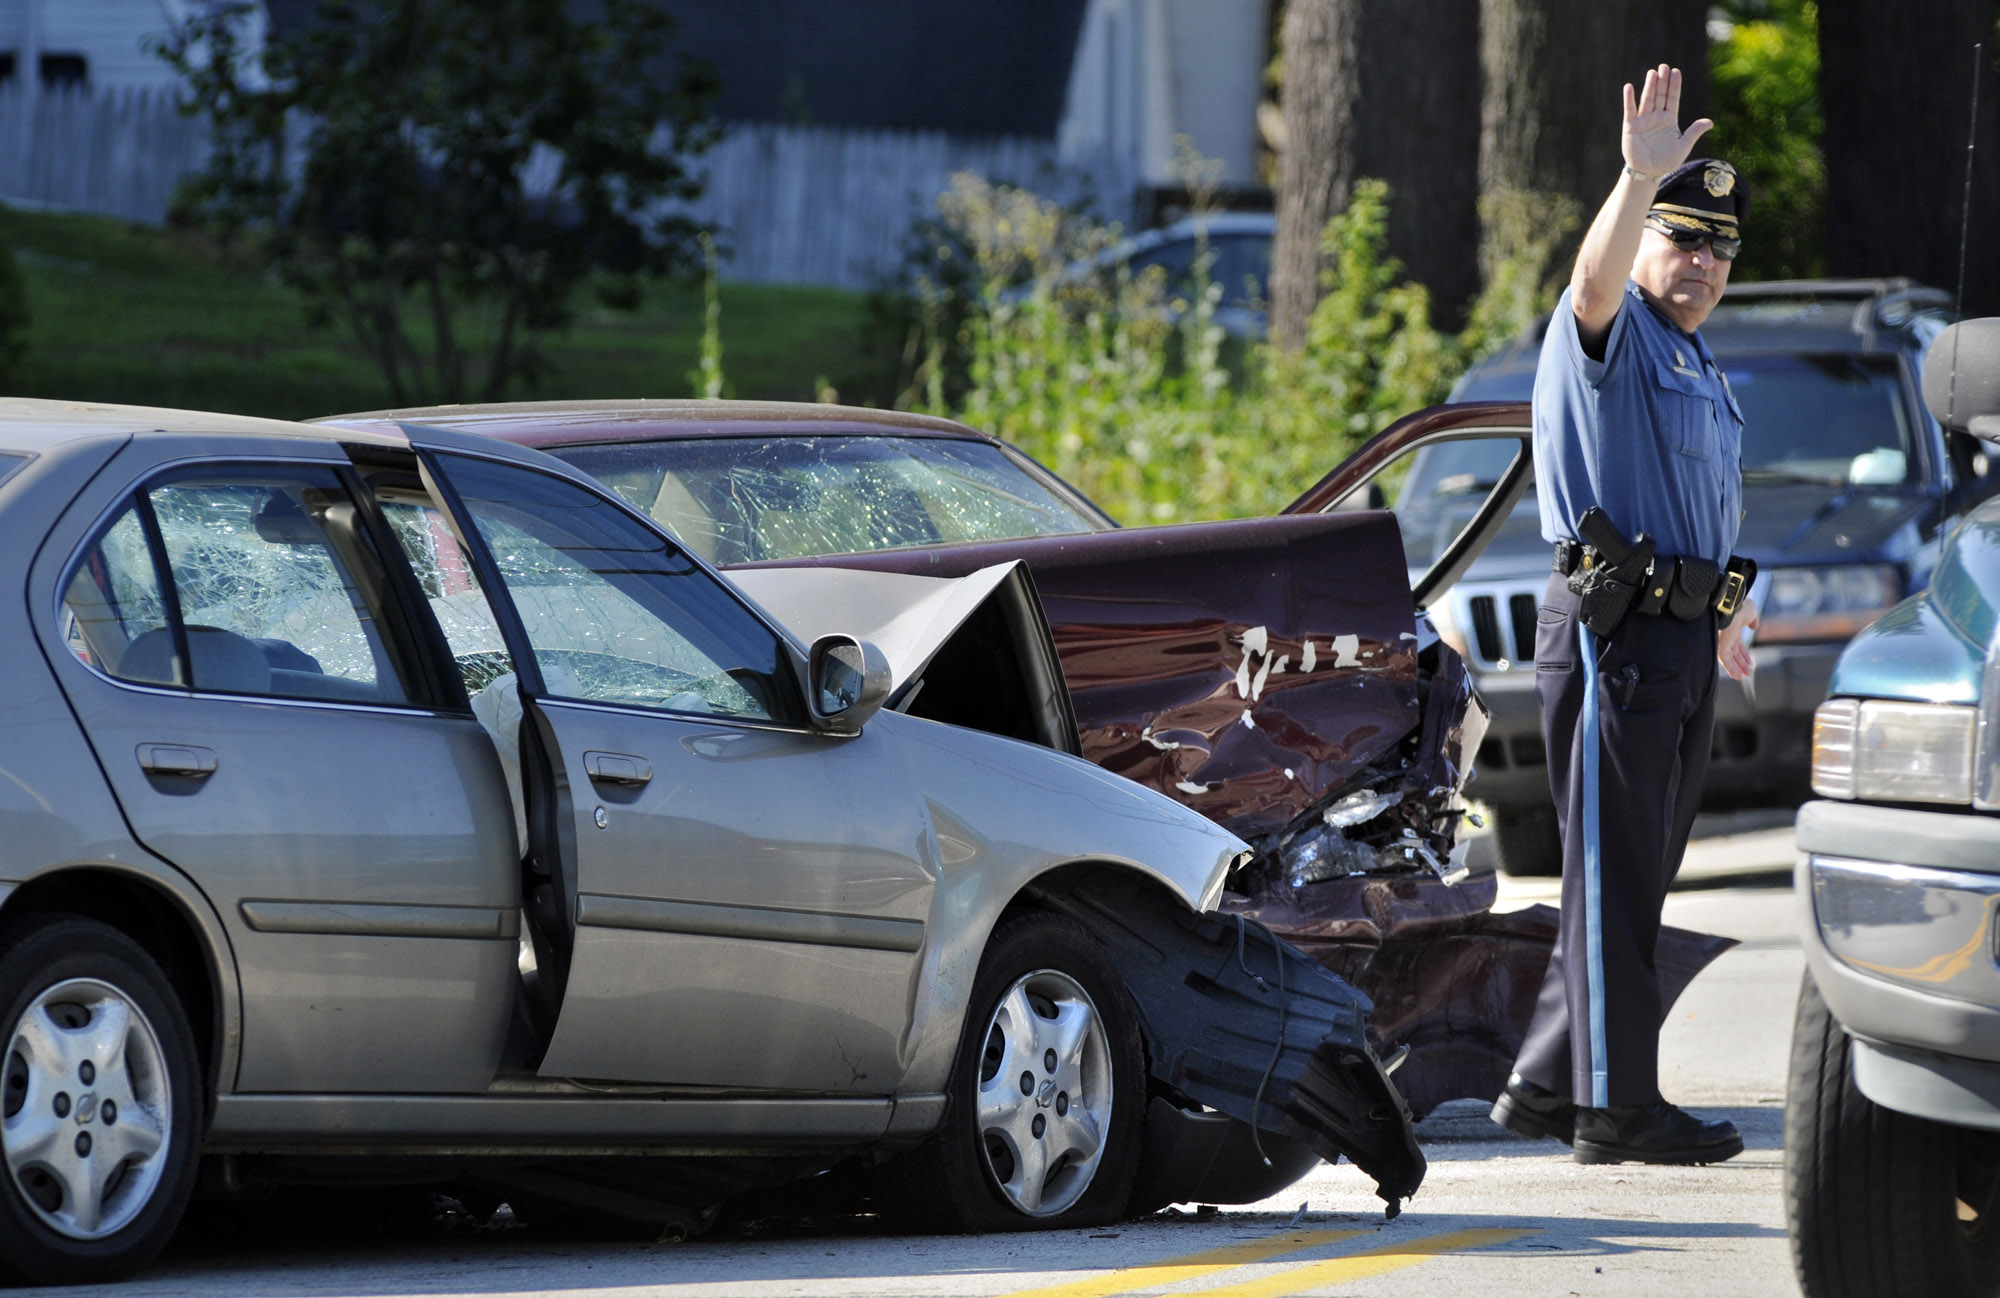 Can Undocumented Immigrants Make Claims After Car Accidents?